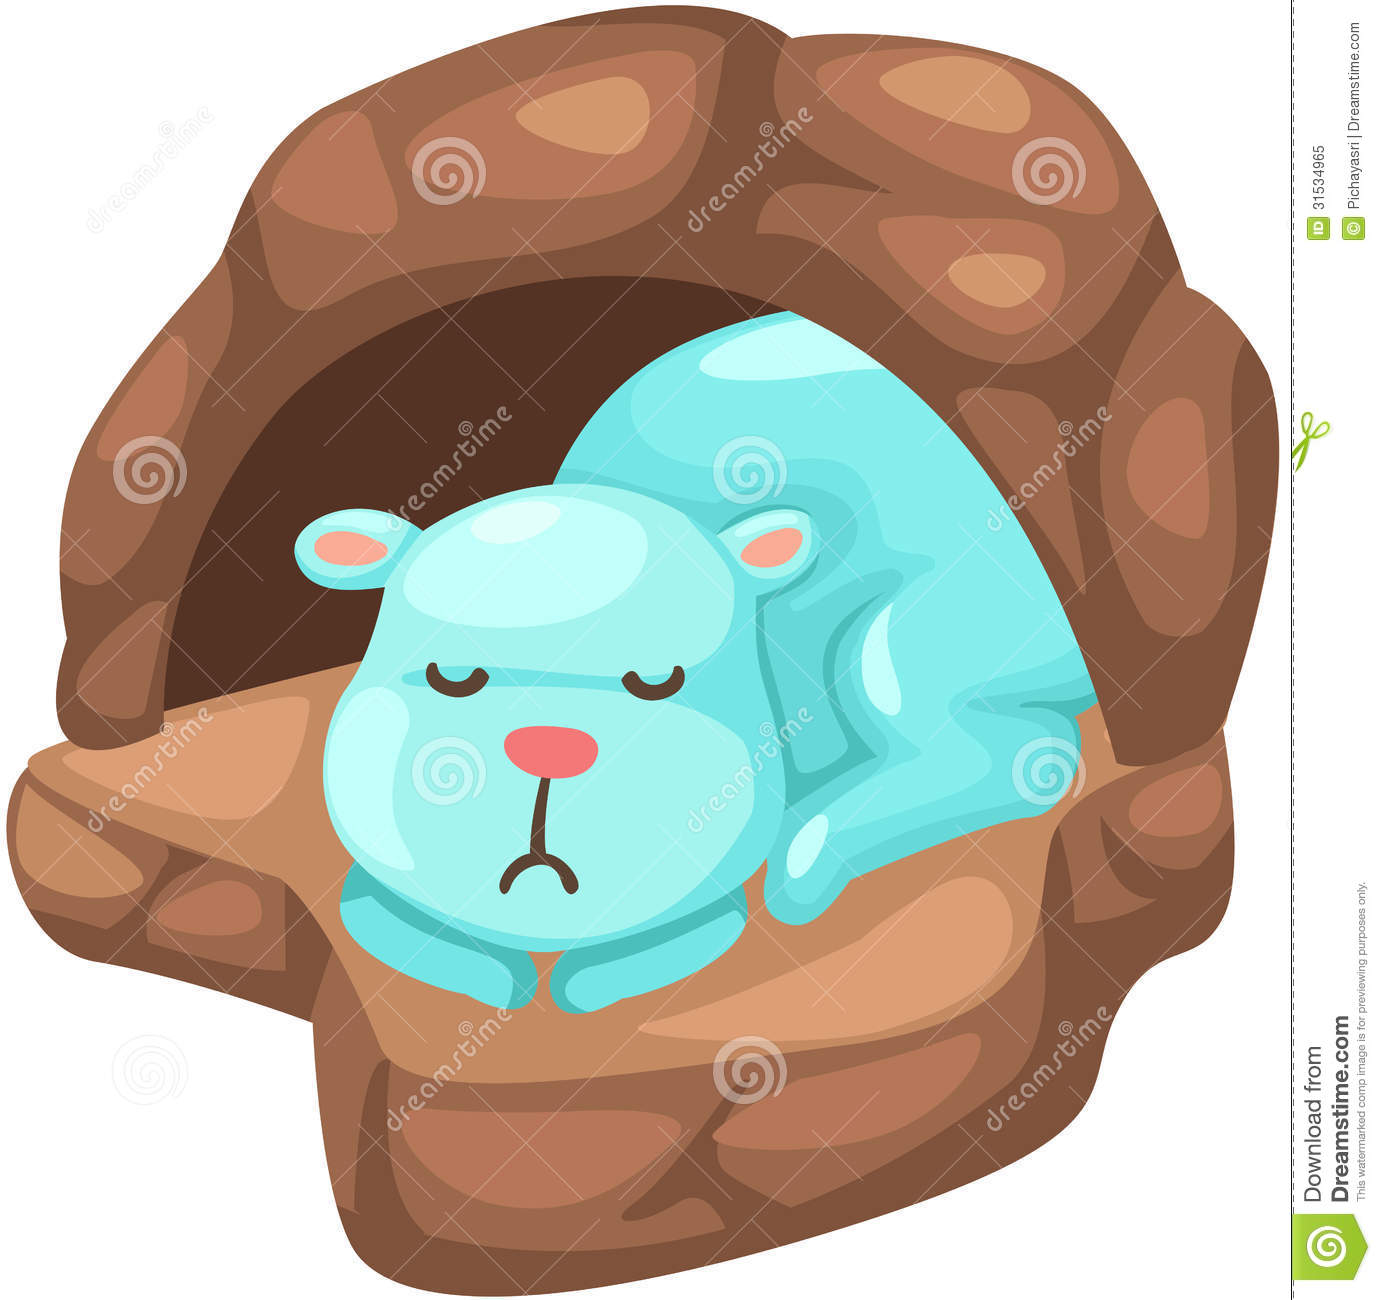 Cute Bear Sleeping In The Cave Royalty Free Stock Photo   Image